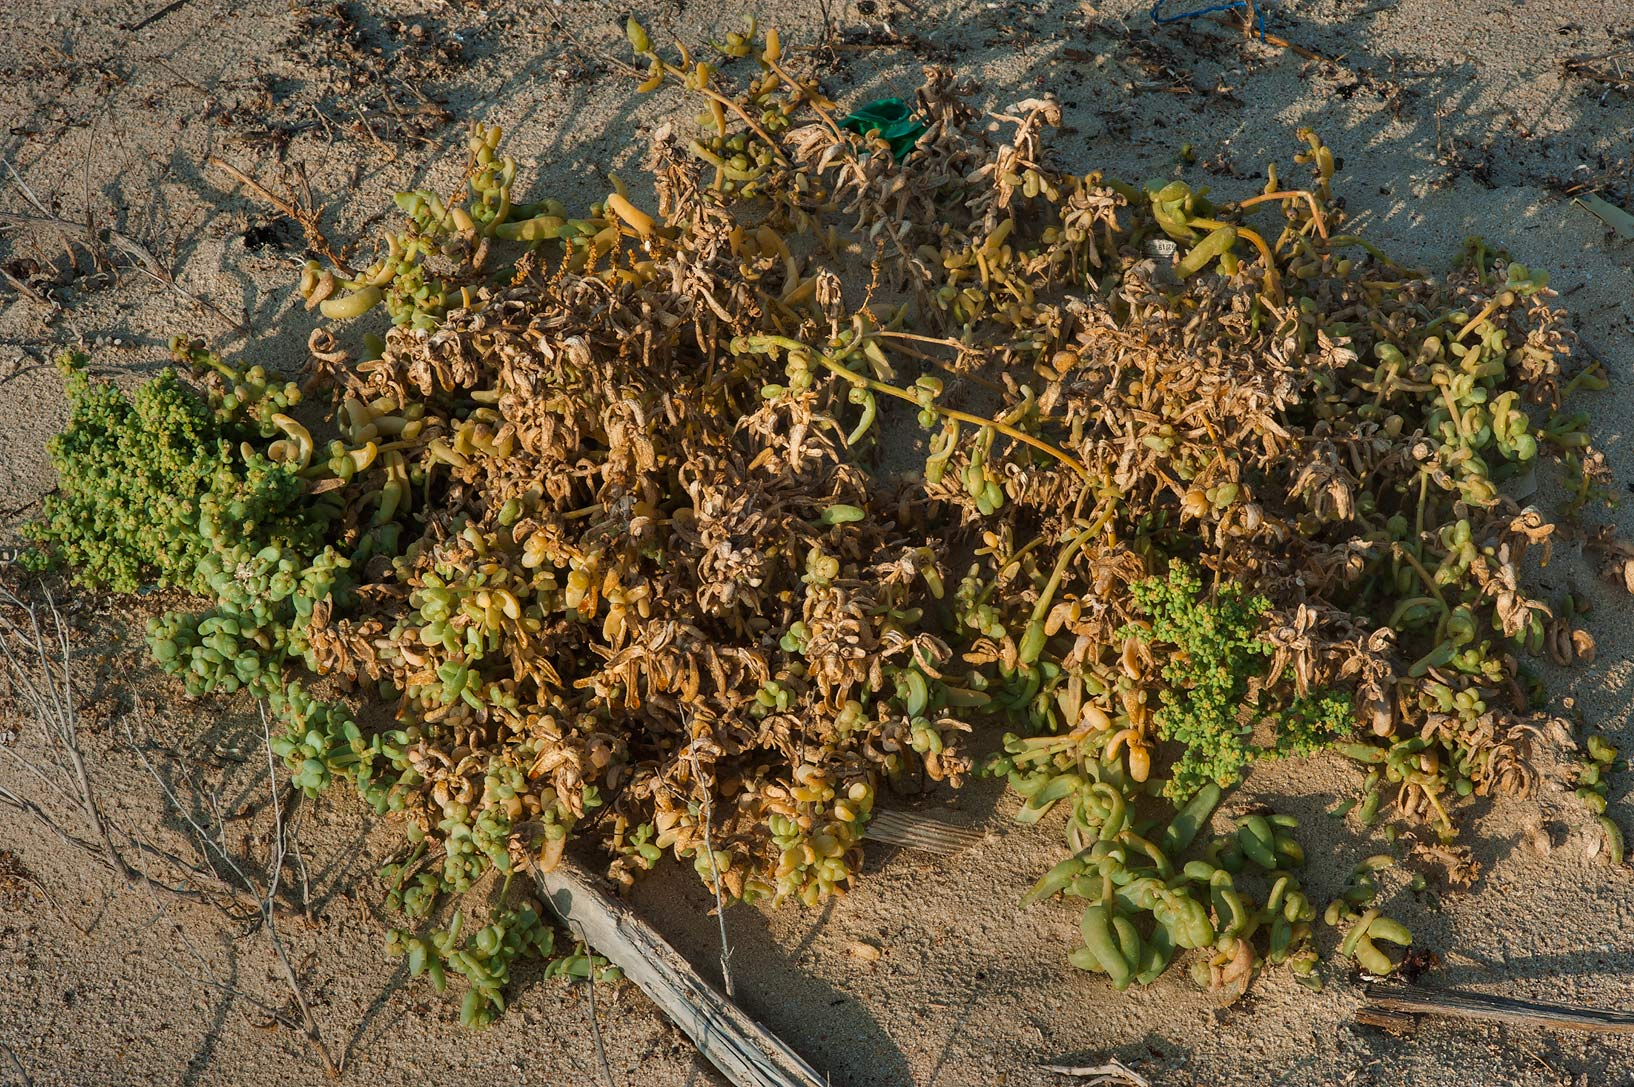 Dying plant of Bienertia cycloptera on a beach in...Samra, near the border. Southern Qatar